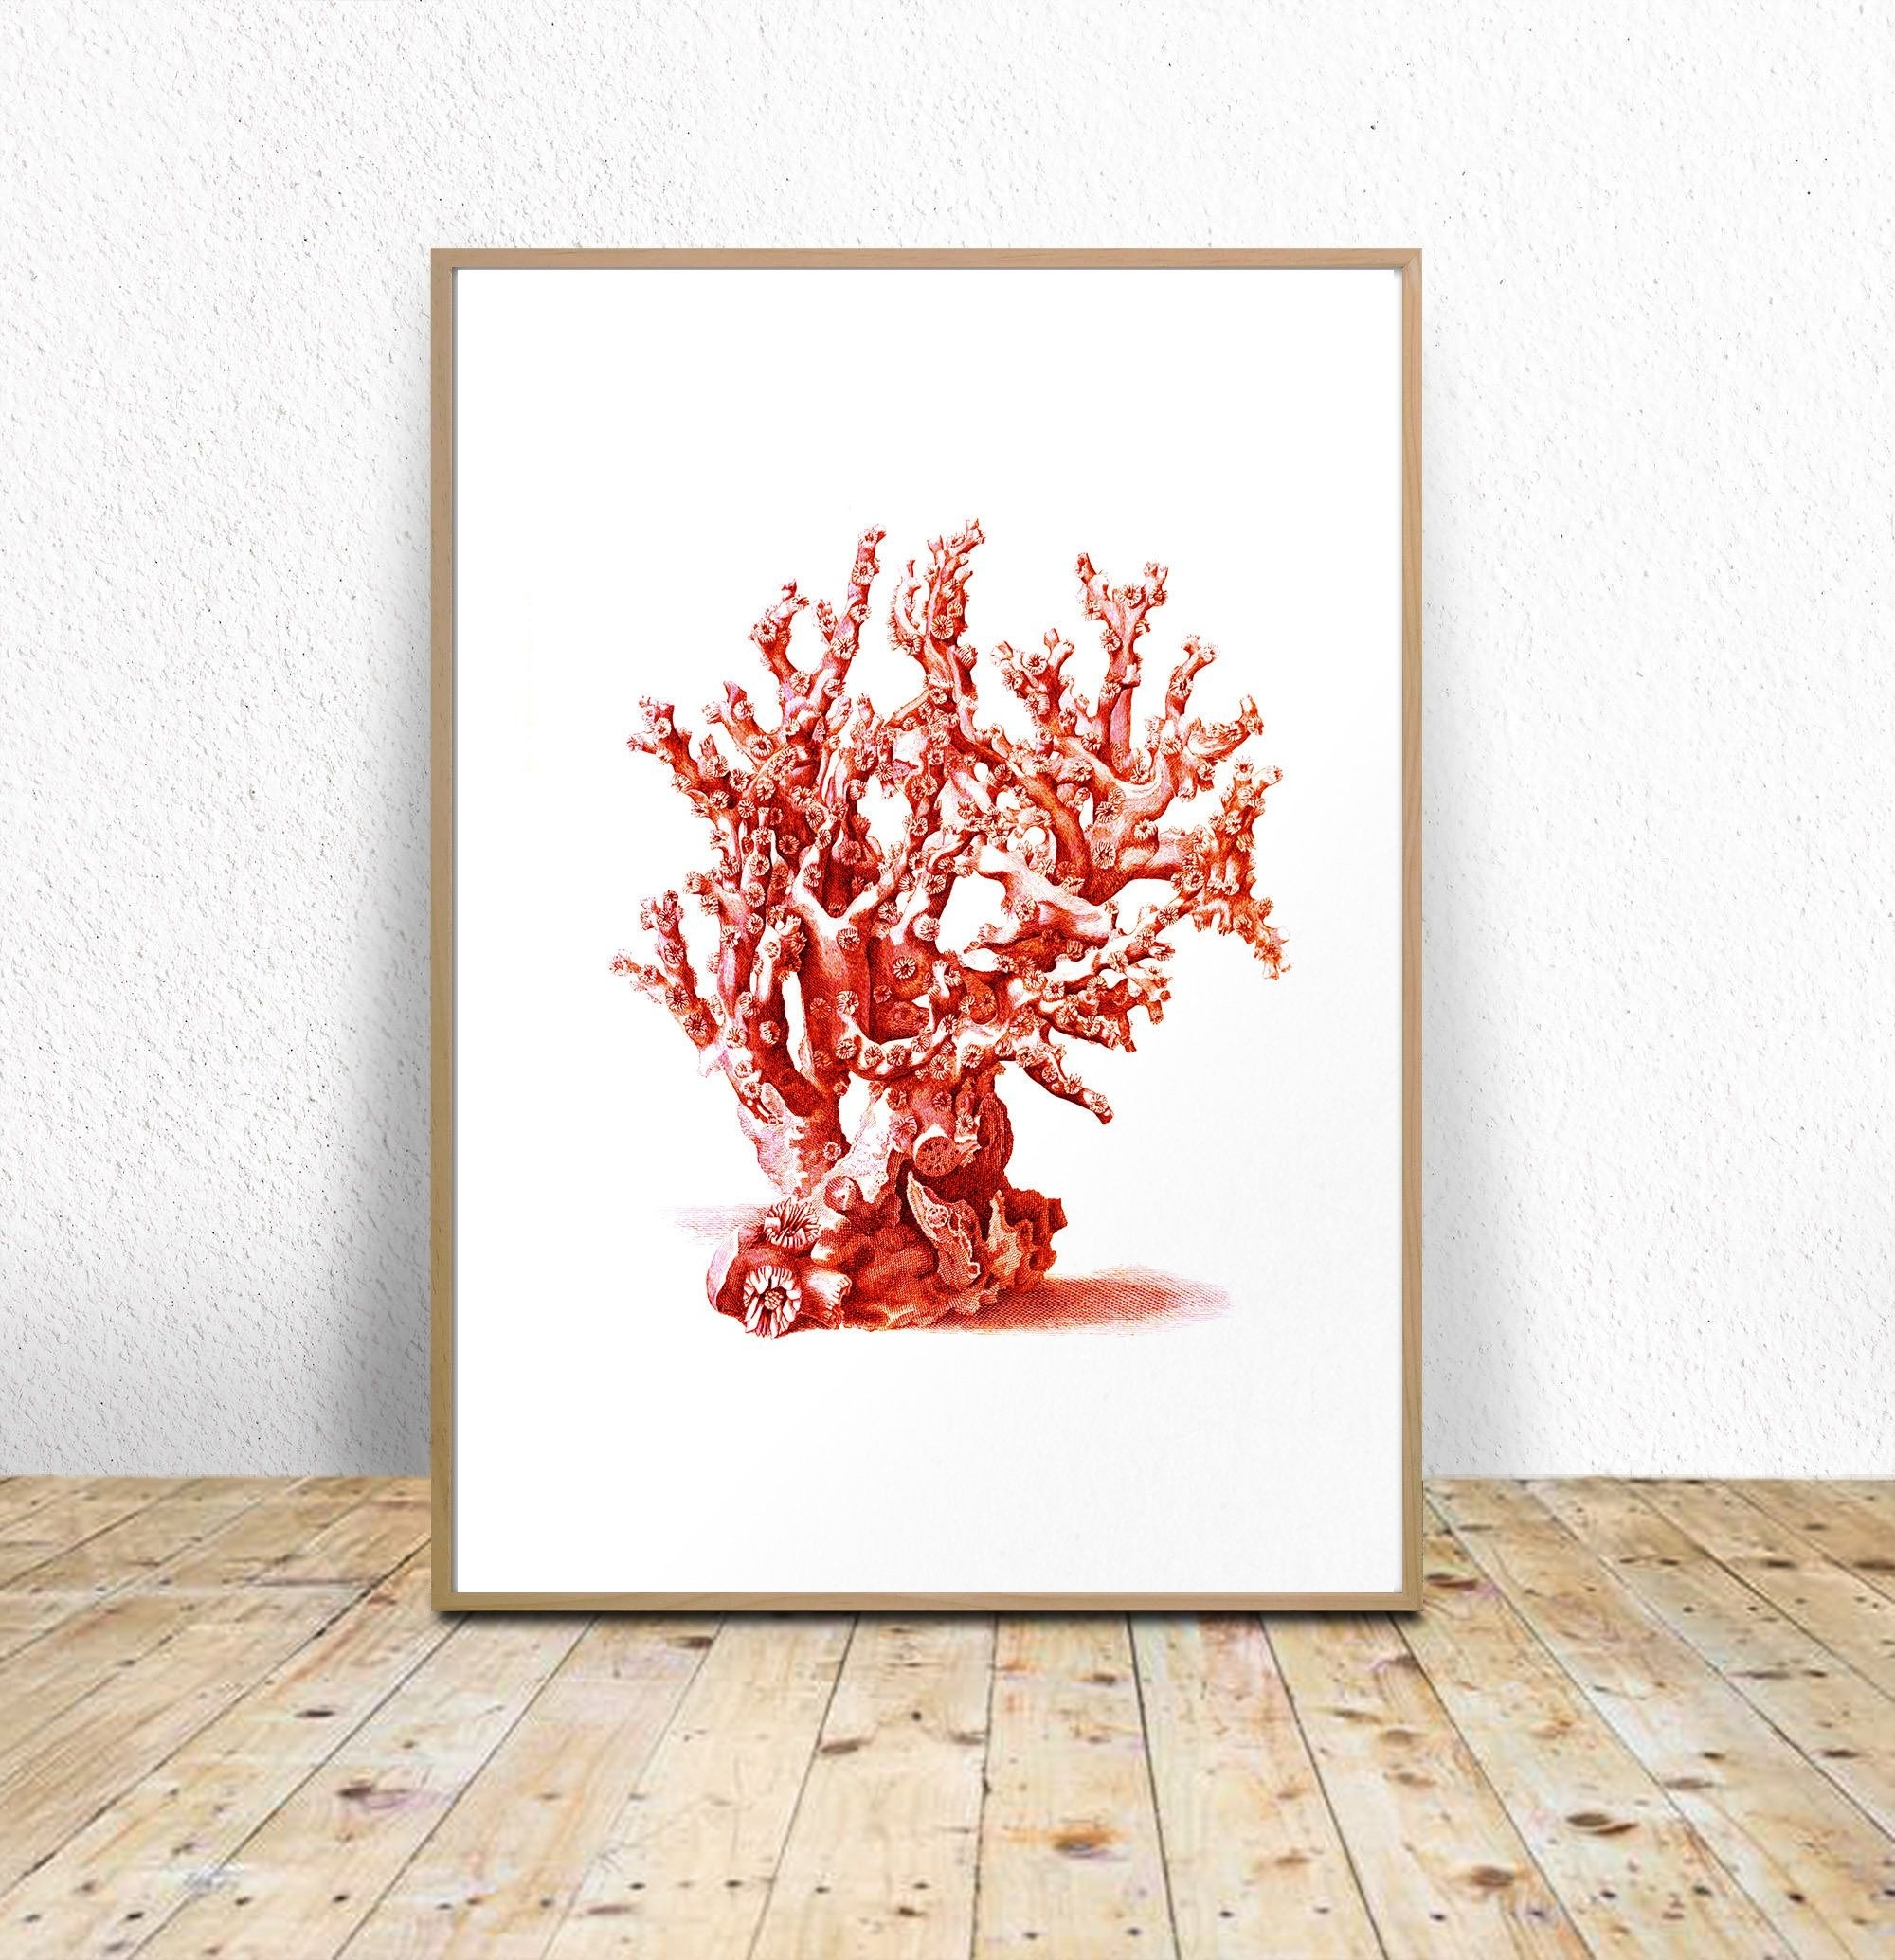 Coral Wall Art Intended For Well Known Sea Coral Printable, Red Sea Coral, Coral Wall Art, Digital Download (View 9 of 15)